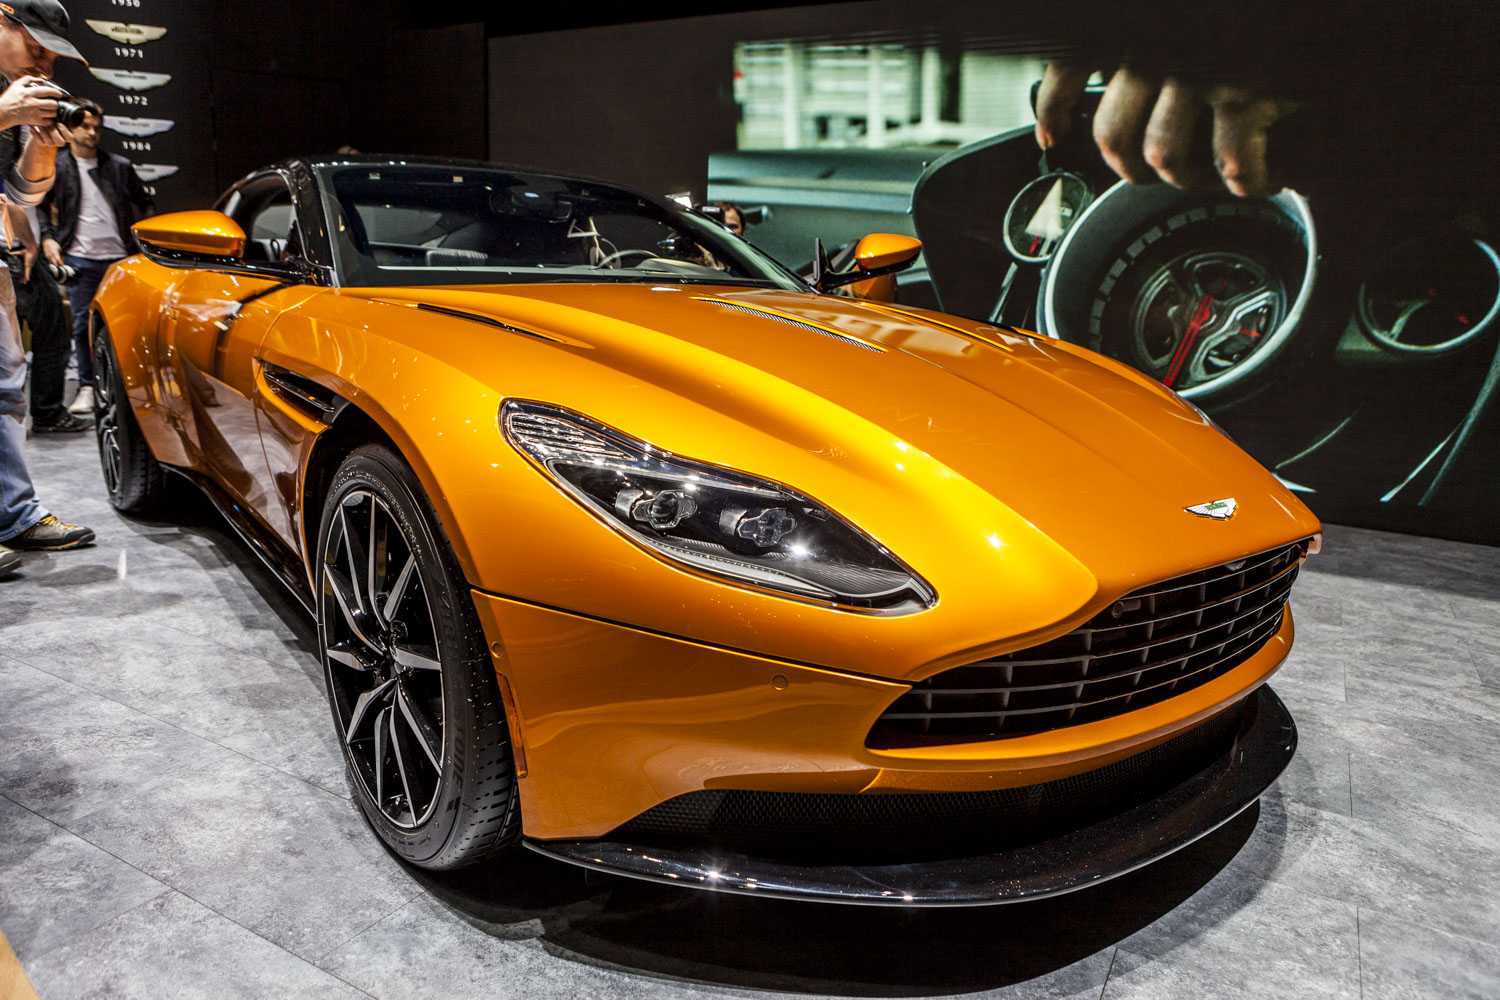 aston martin db9 engine with Geneva 2016  Aston Martin Db11 on Watch additionally Cyg  2011 2013 in addition Eugenie Bouchard together with 24 Best Wall Painting as well 1938 Chevrolet Coupe For Sale Craigslist.